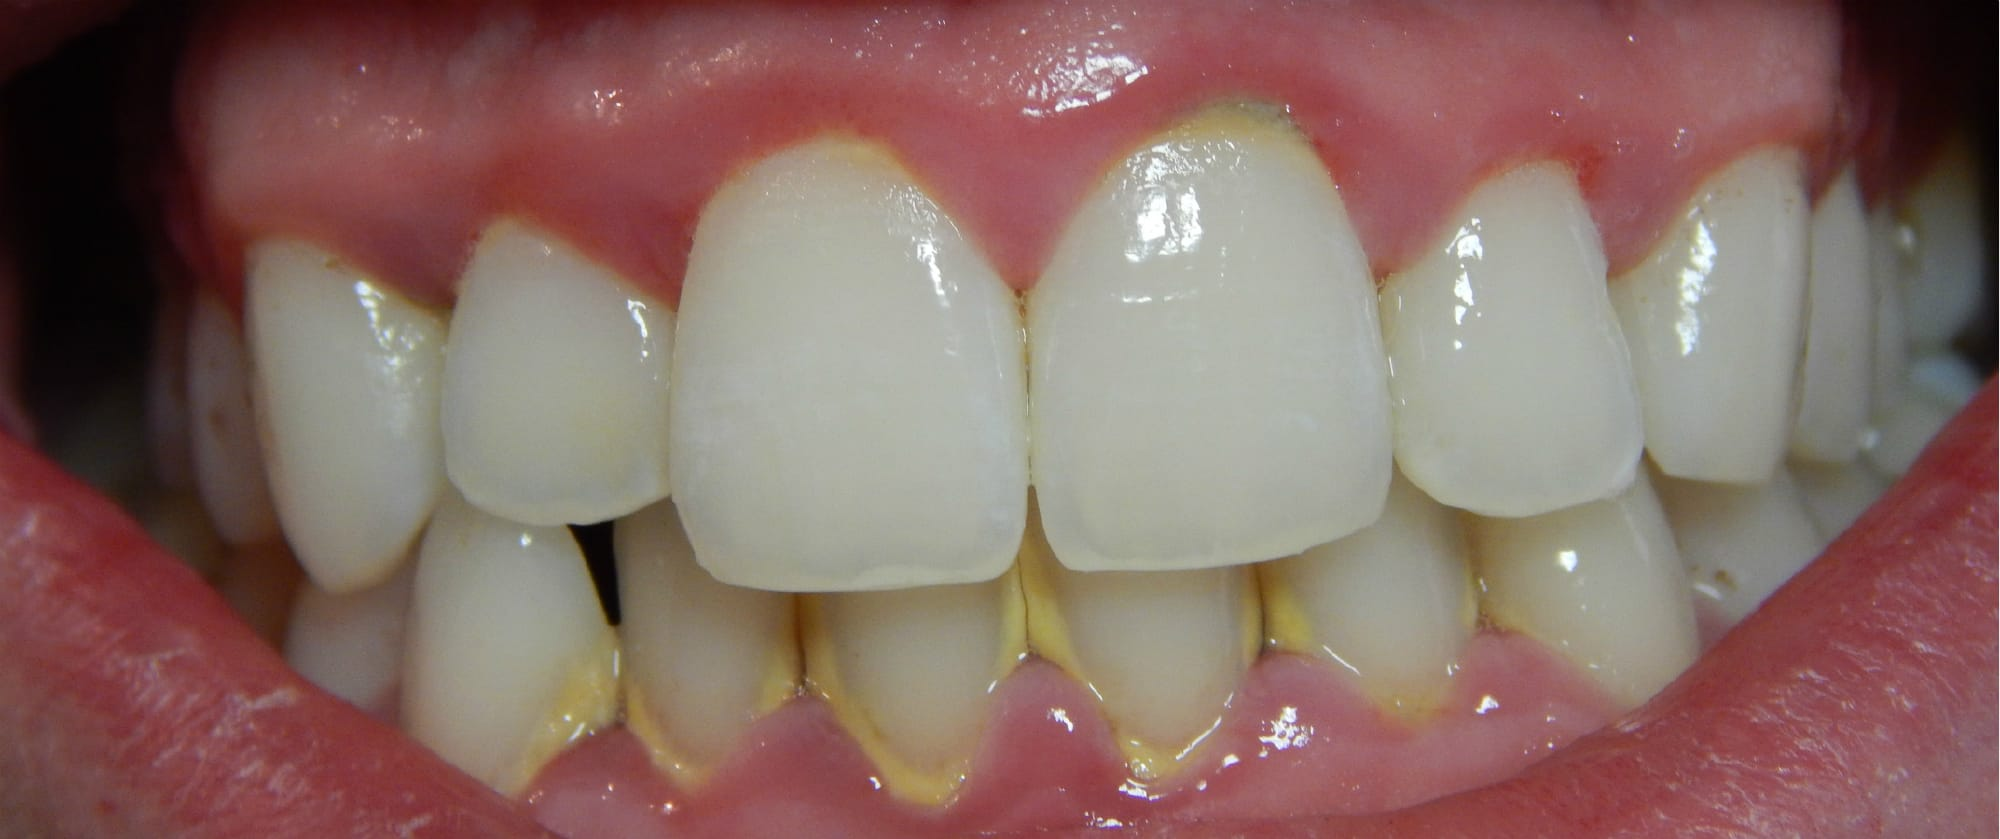 Image result for tartar teeth images